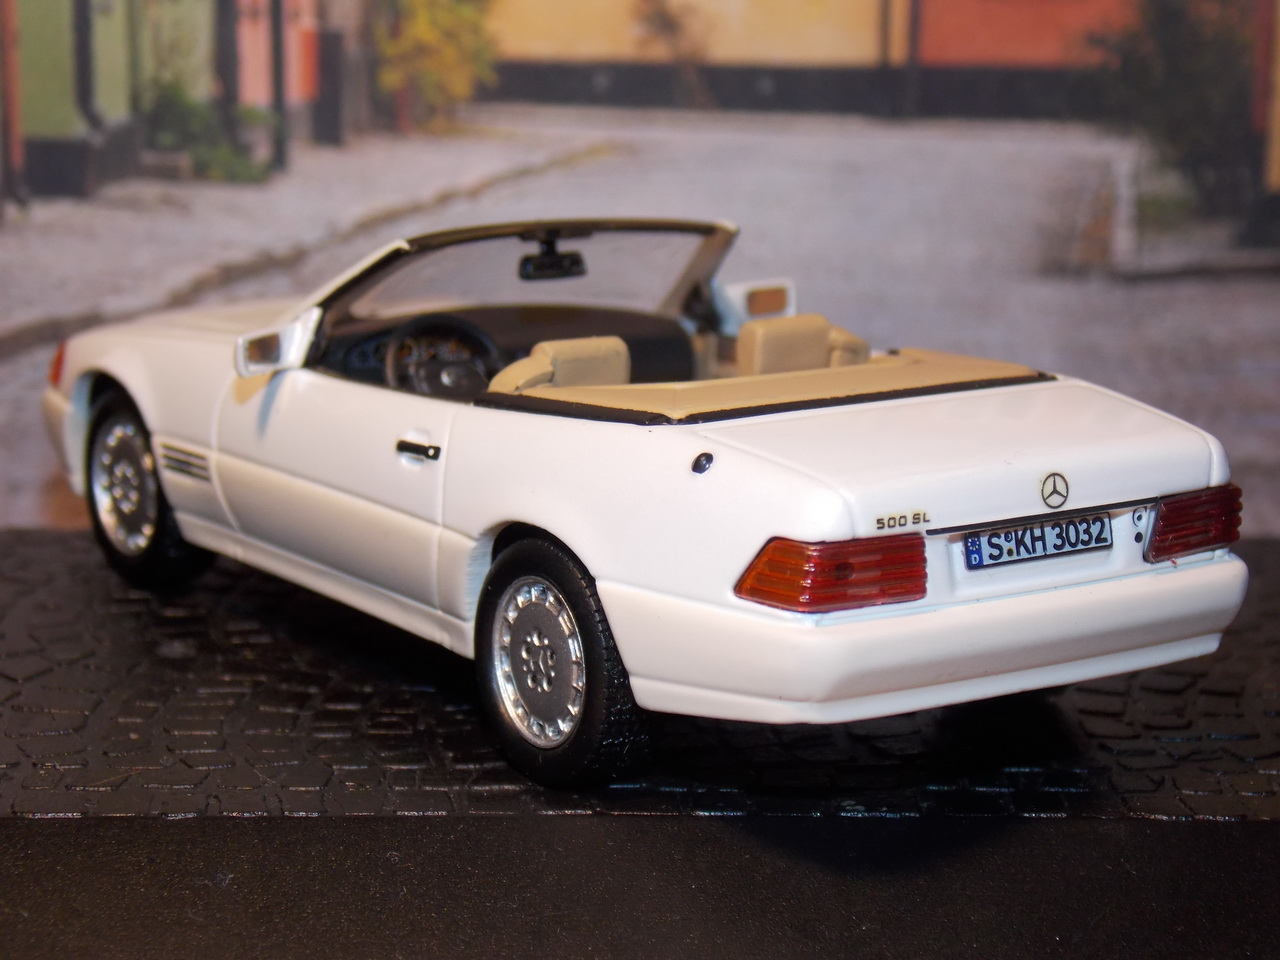 Mercedes Benz 500 SL – 1990